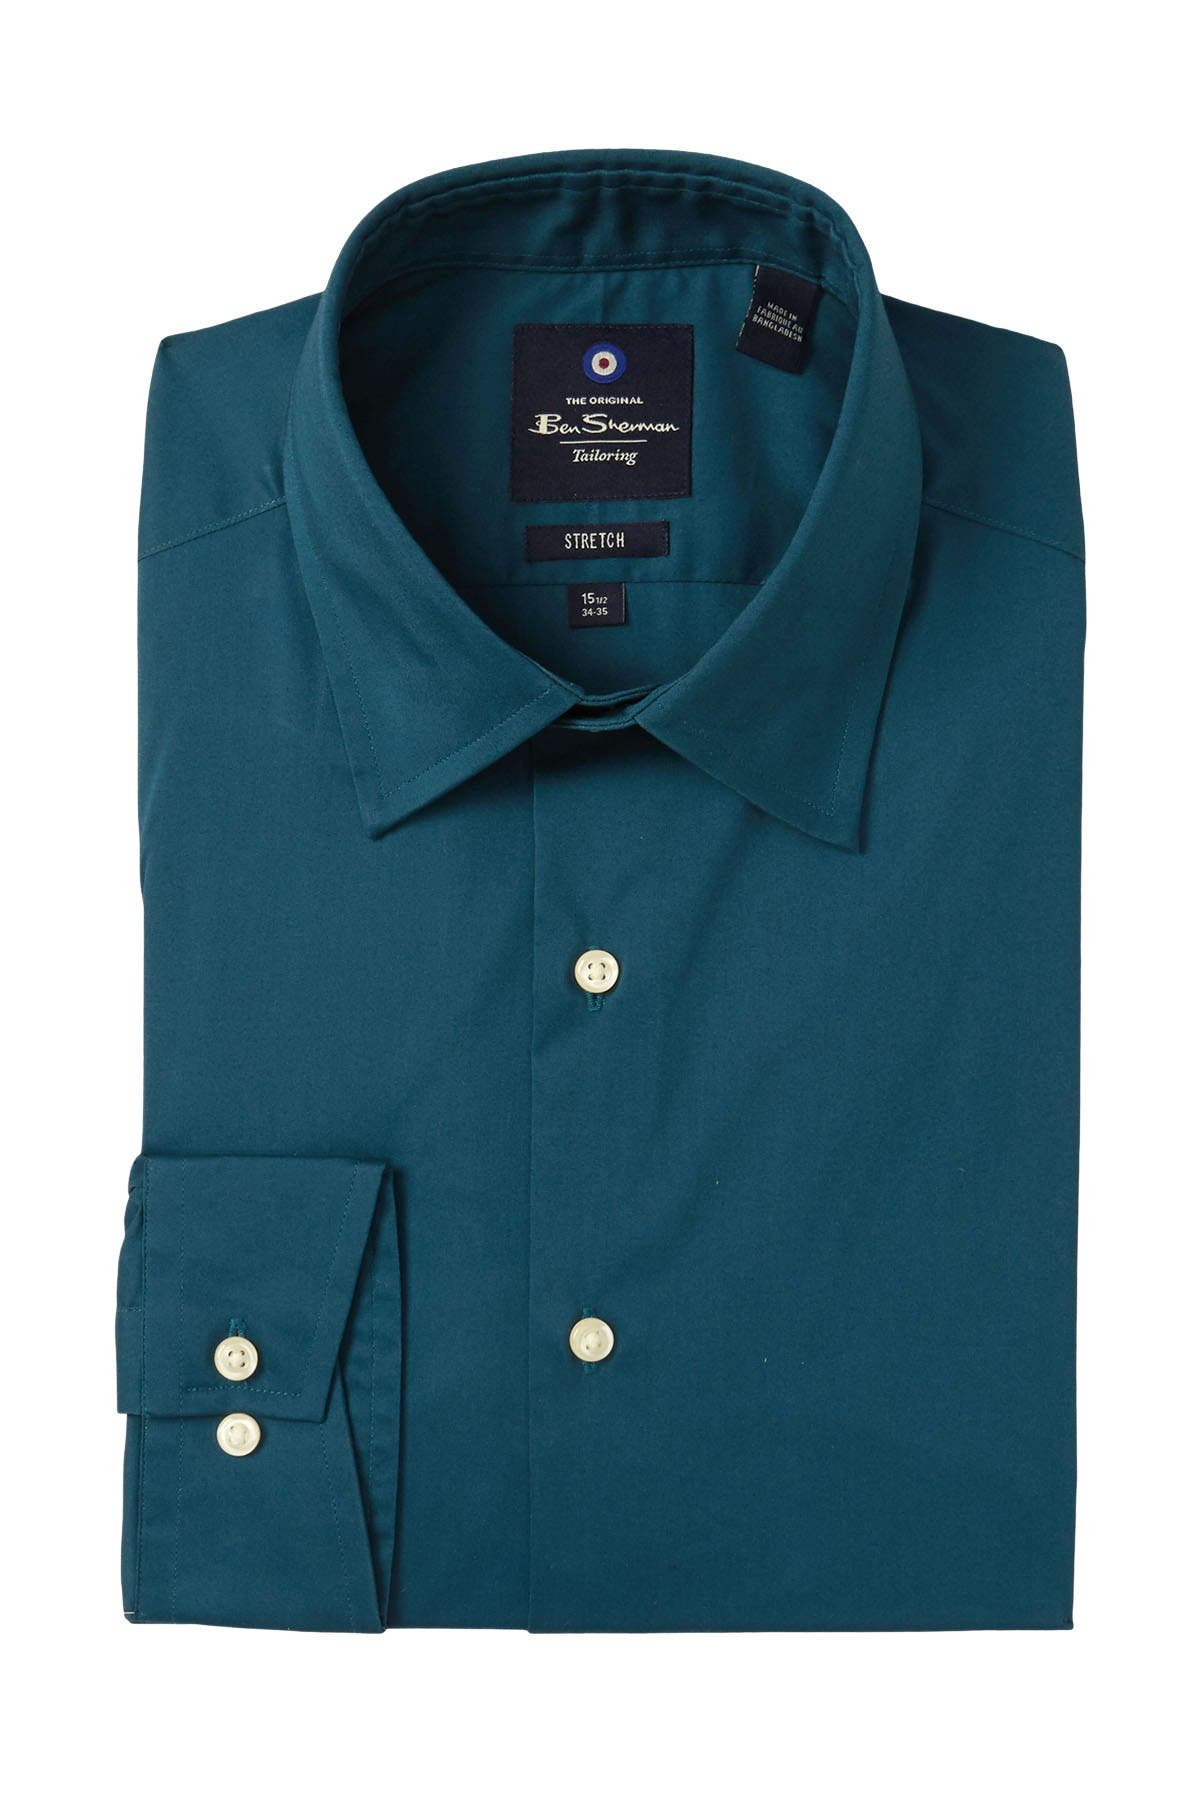 Image of Ben Sherman Solid Tailored Stretch Fit Dress Shirt